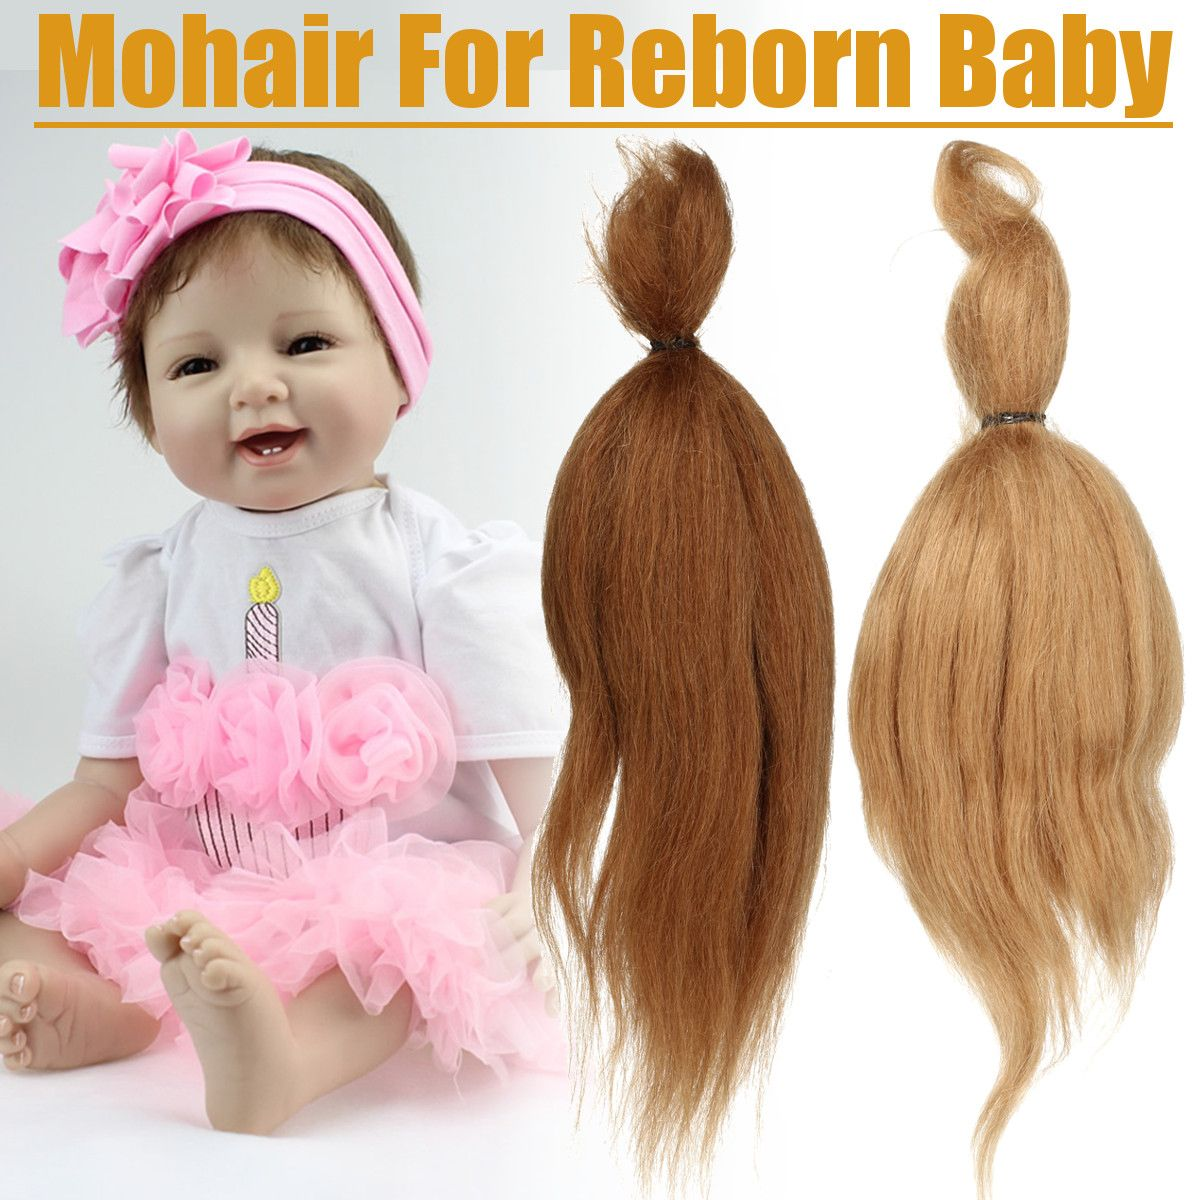 15g Pure Mohair For Reborn Baby Doll Hair With Dark Brown/Gold Color Fit For DIY Reborn Baby Doll DIY Doll Accessories For Kid